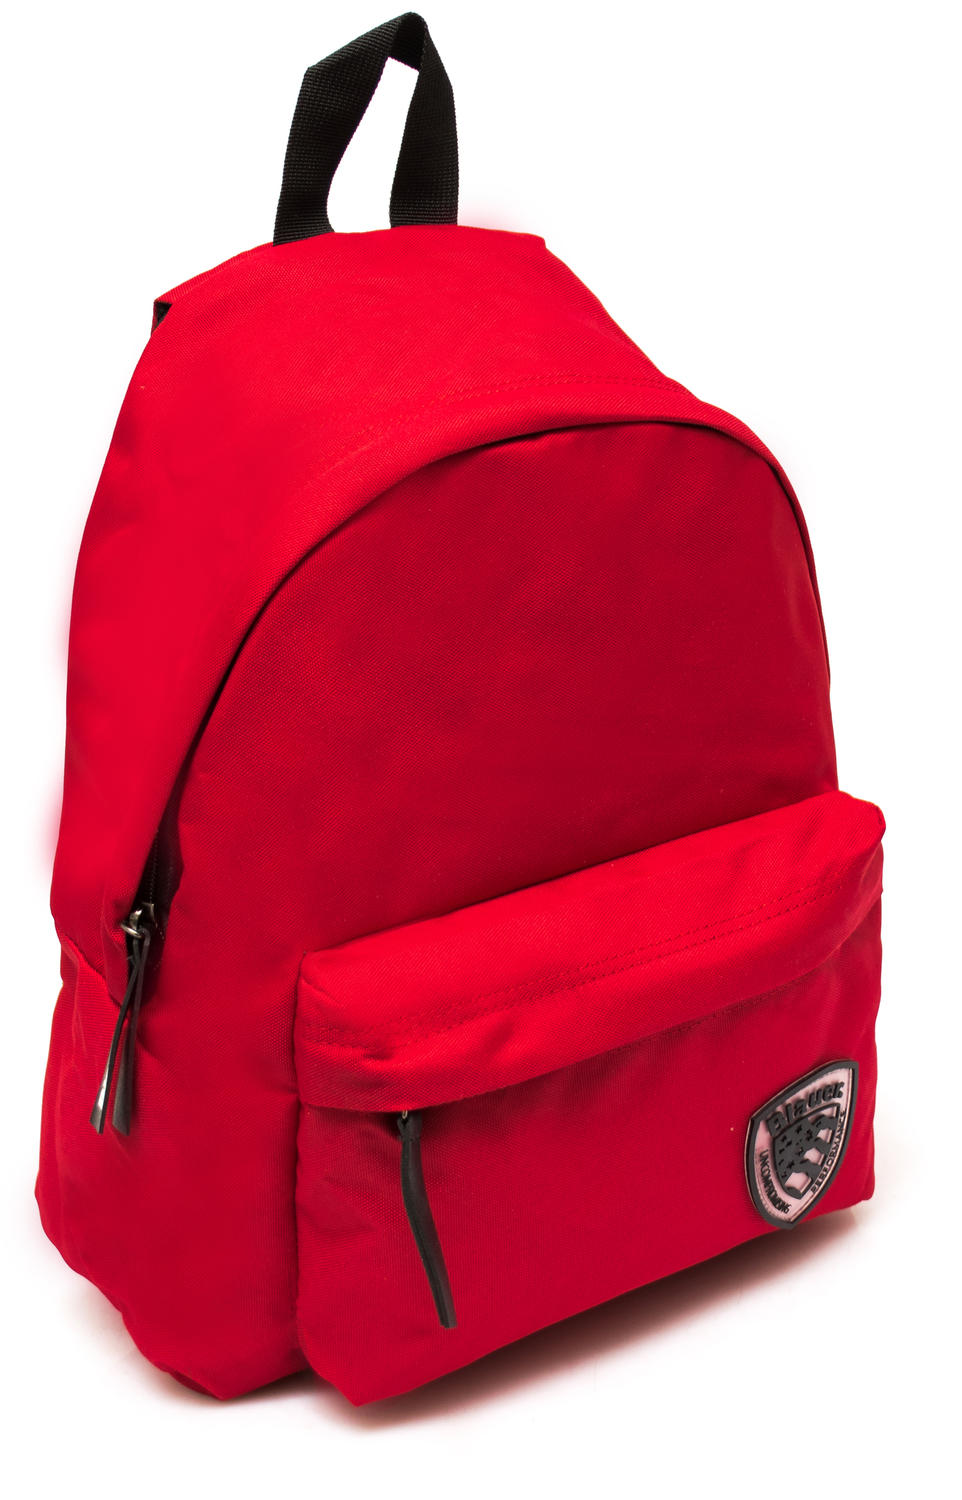 Backpacks & School and Leisure -  Sports backpack in polyester